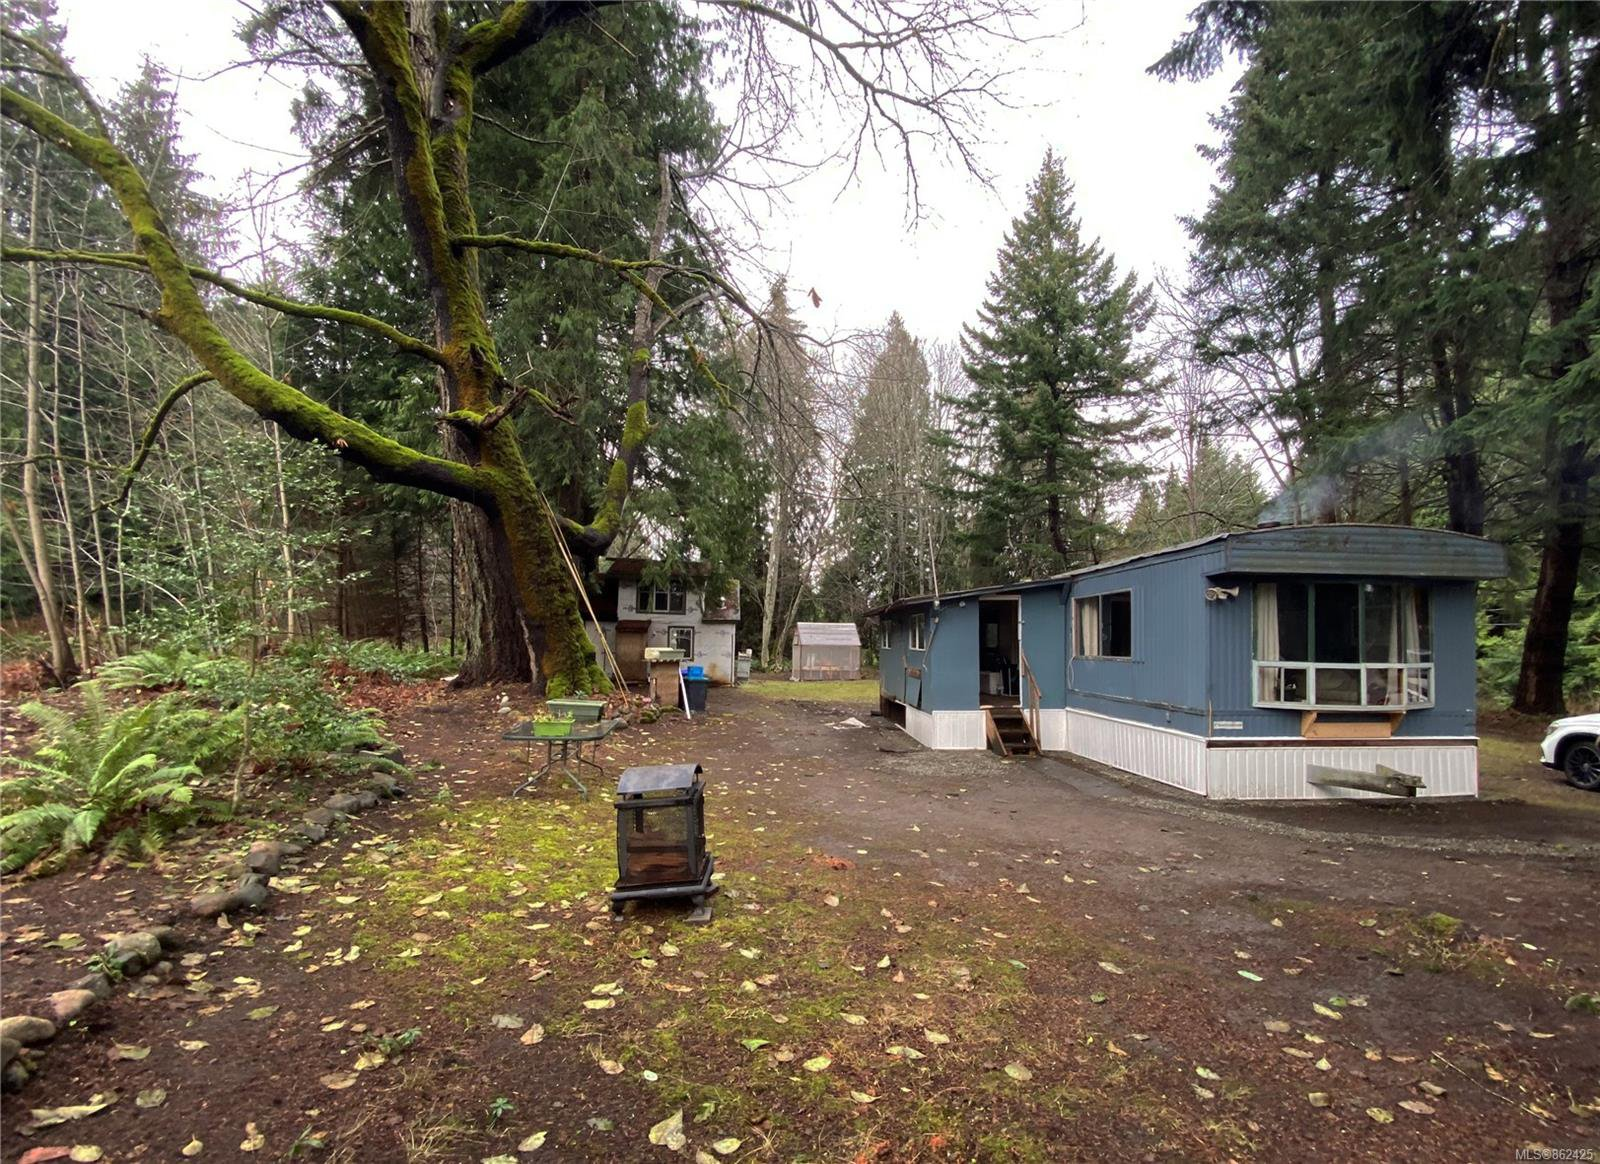 Main Photo: 5070 Gainsberg Rd in : PQ Bowser/Deep Bay Manufactured Home for sale (Parksville/Qualicum)  : MLS®# 862425